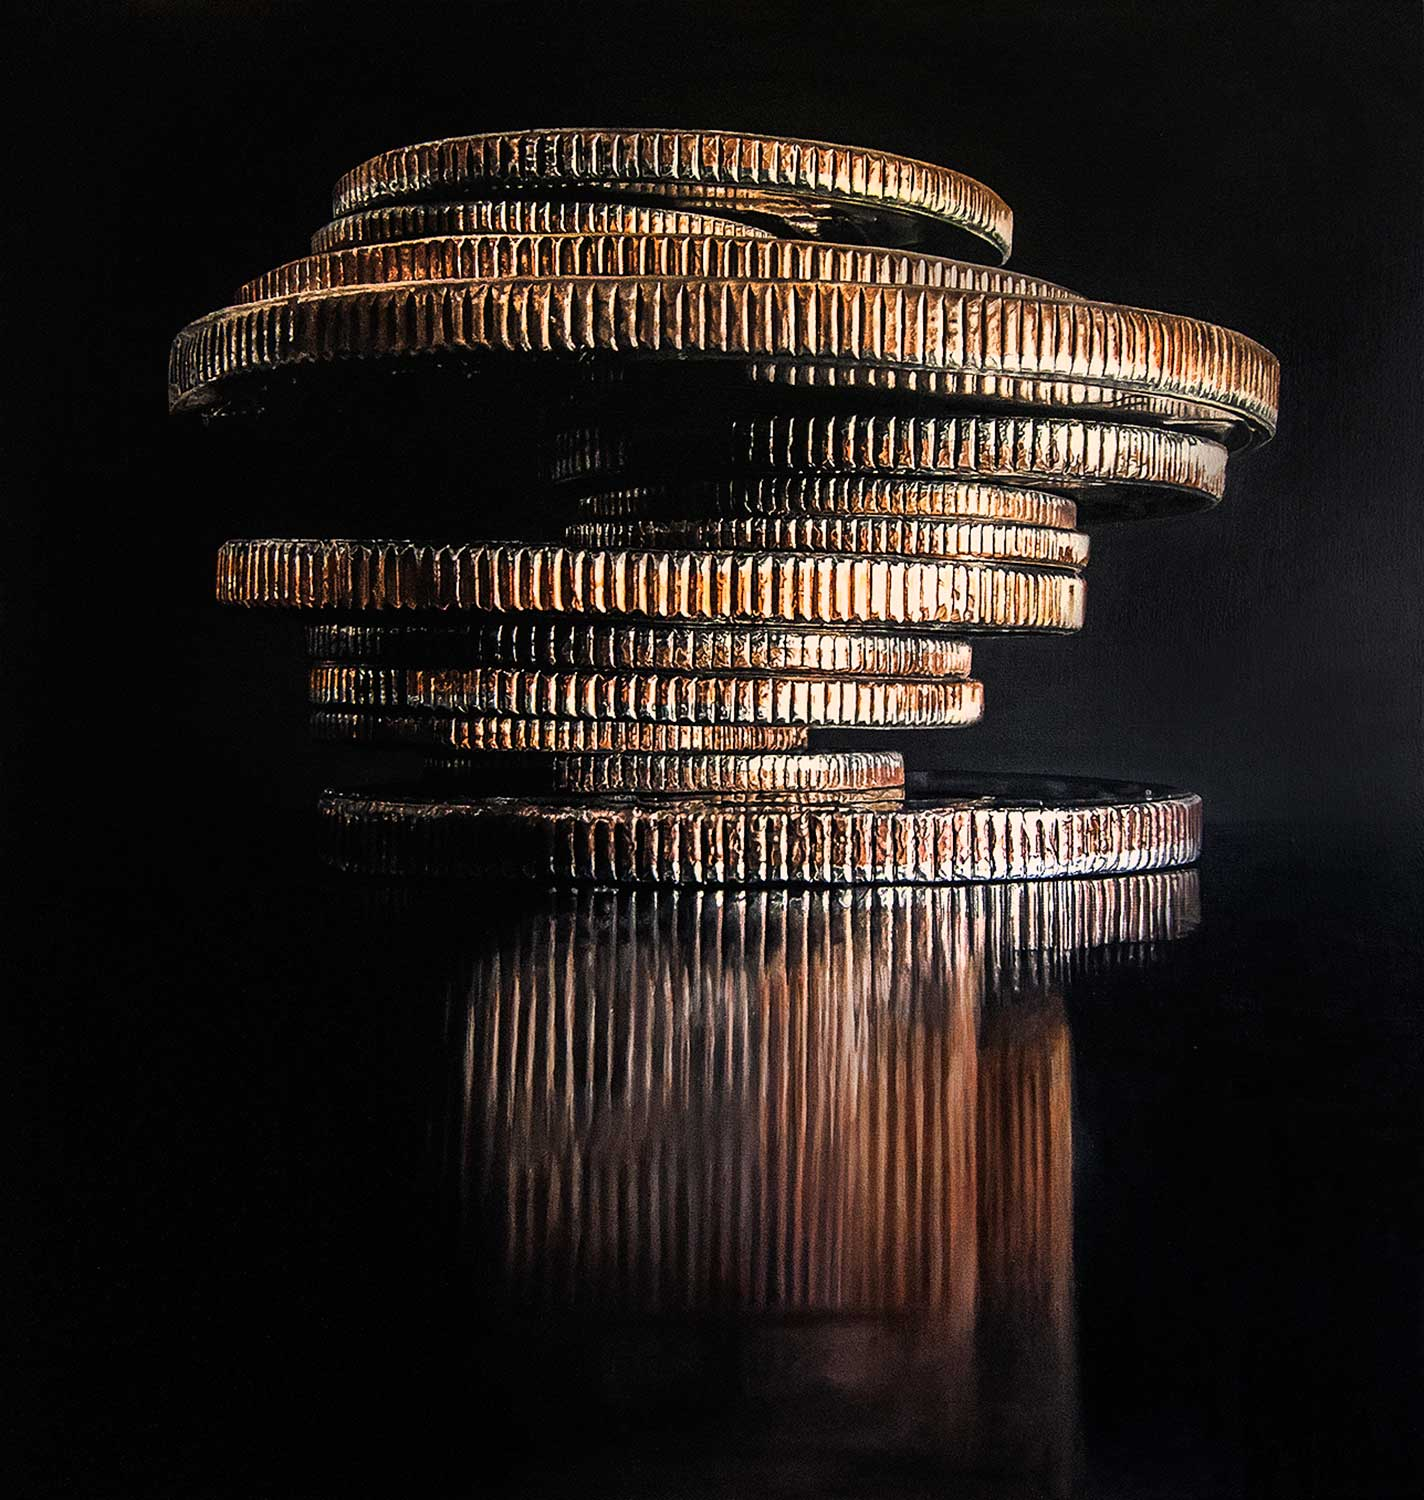 """Large Coin Stack 1, 2018 Oil on canvas 40x42"""""""